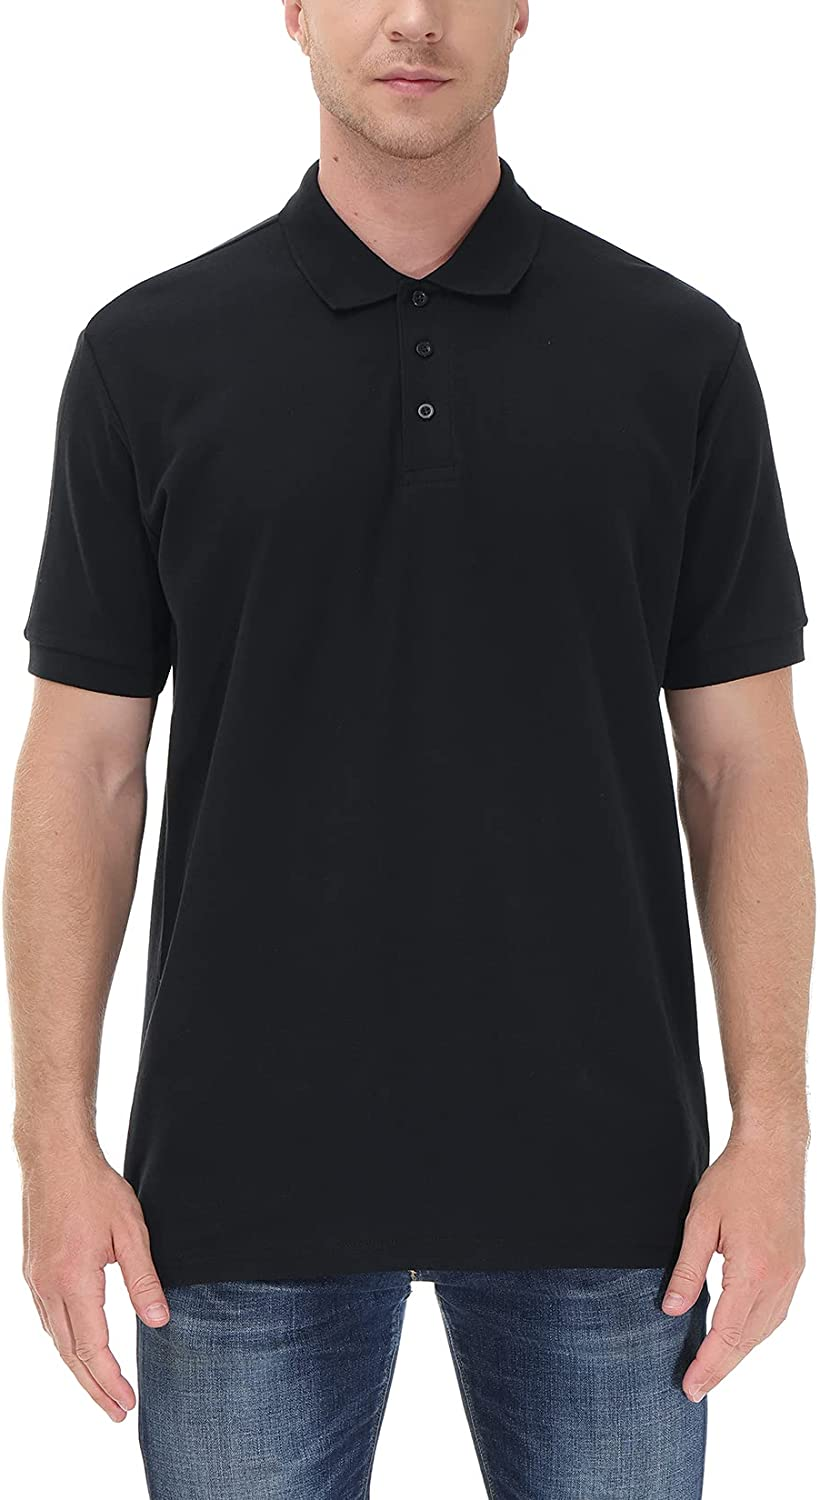 DGG Men's Special price Classic Polo Shirts Sleeve Solid Work Shipping included Breathable Short